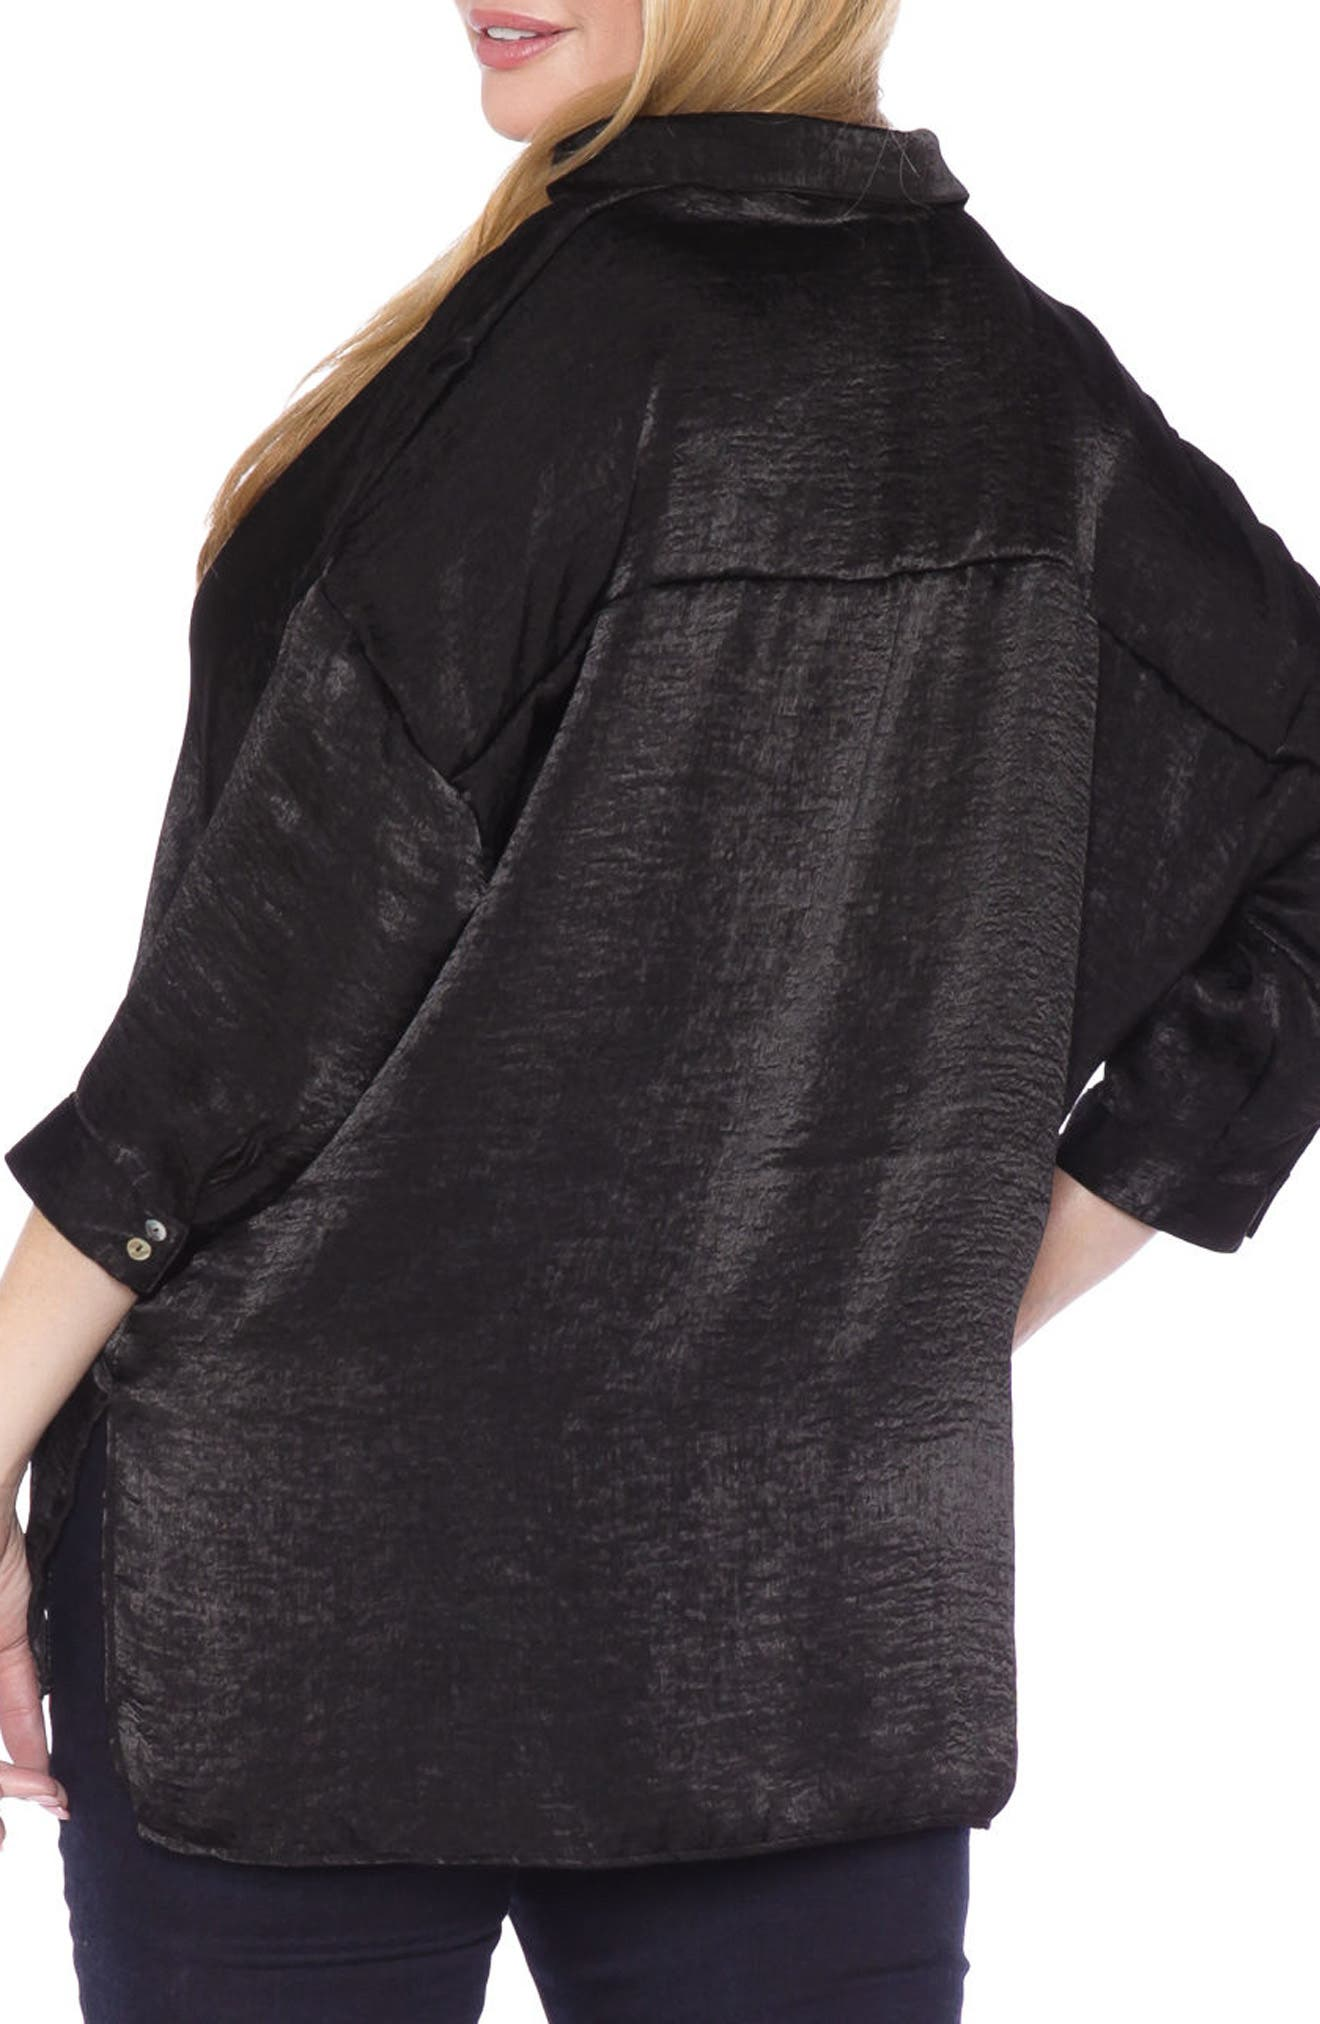 Hammered Satin Shirt,                             Alternate thumbnail 2, color,                             Black